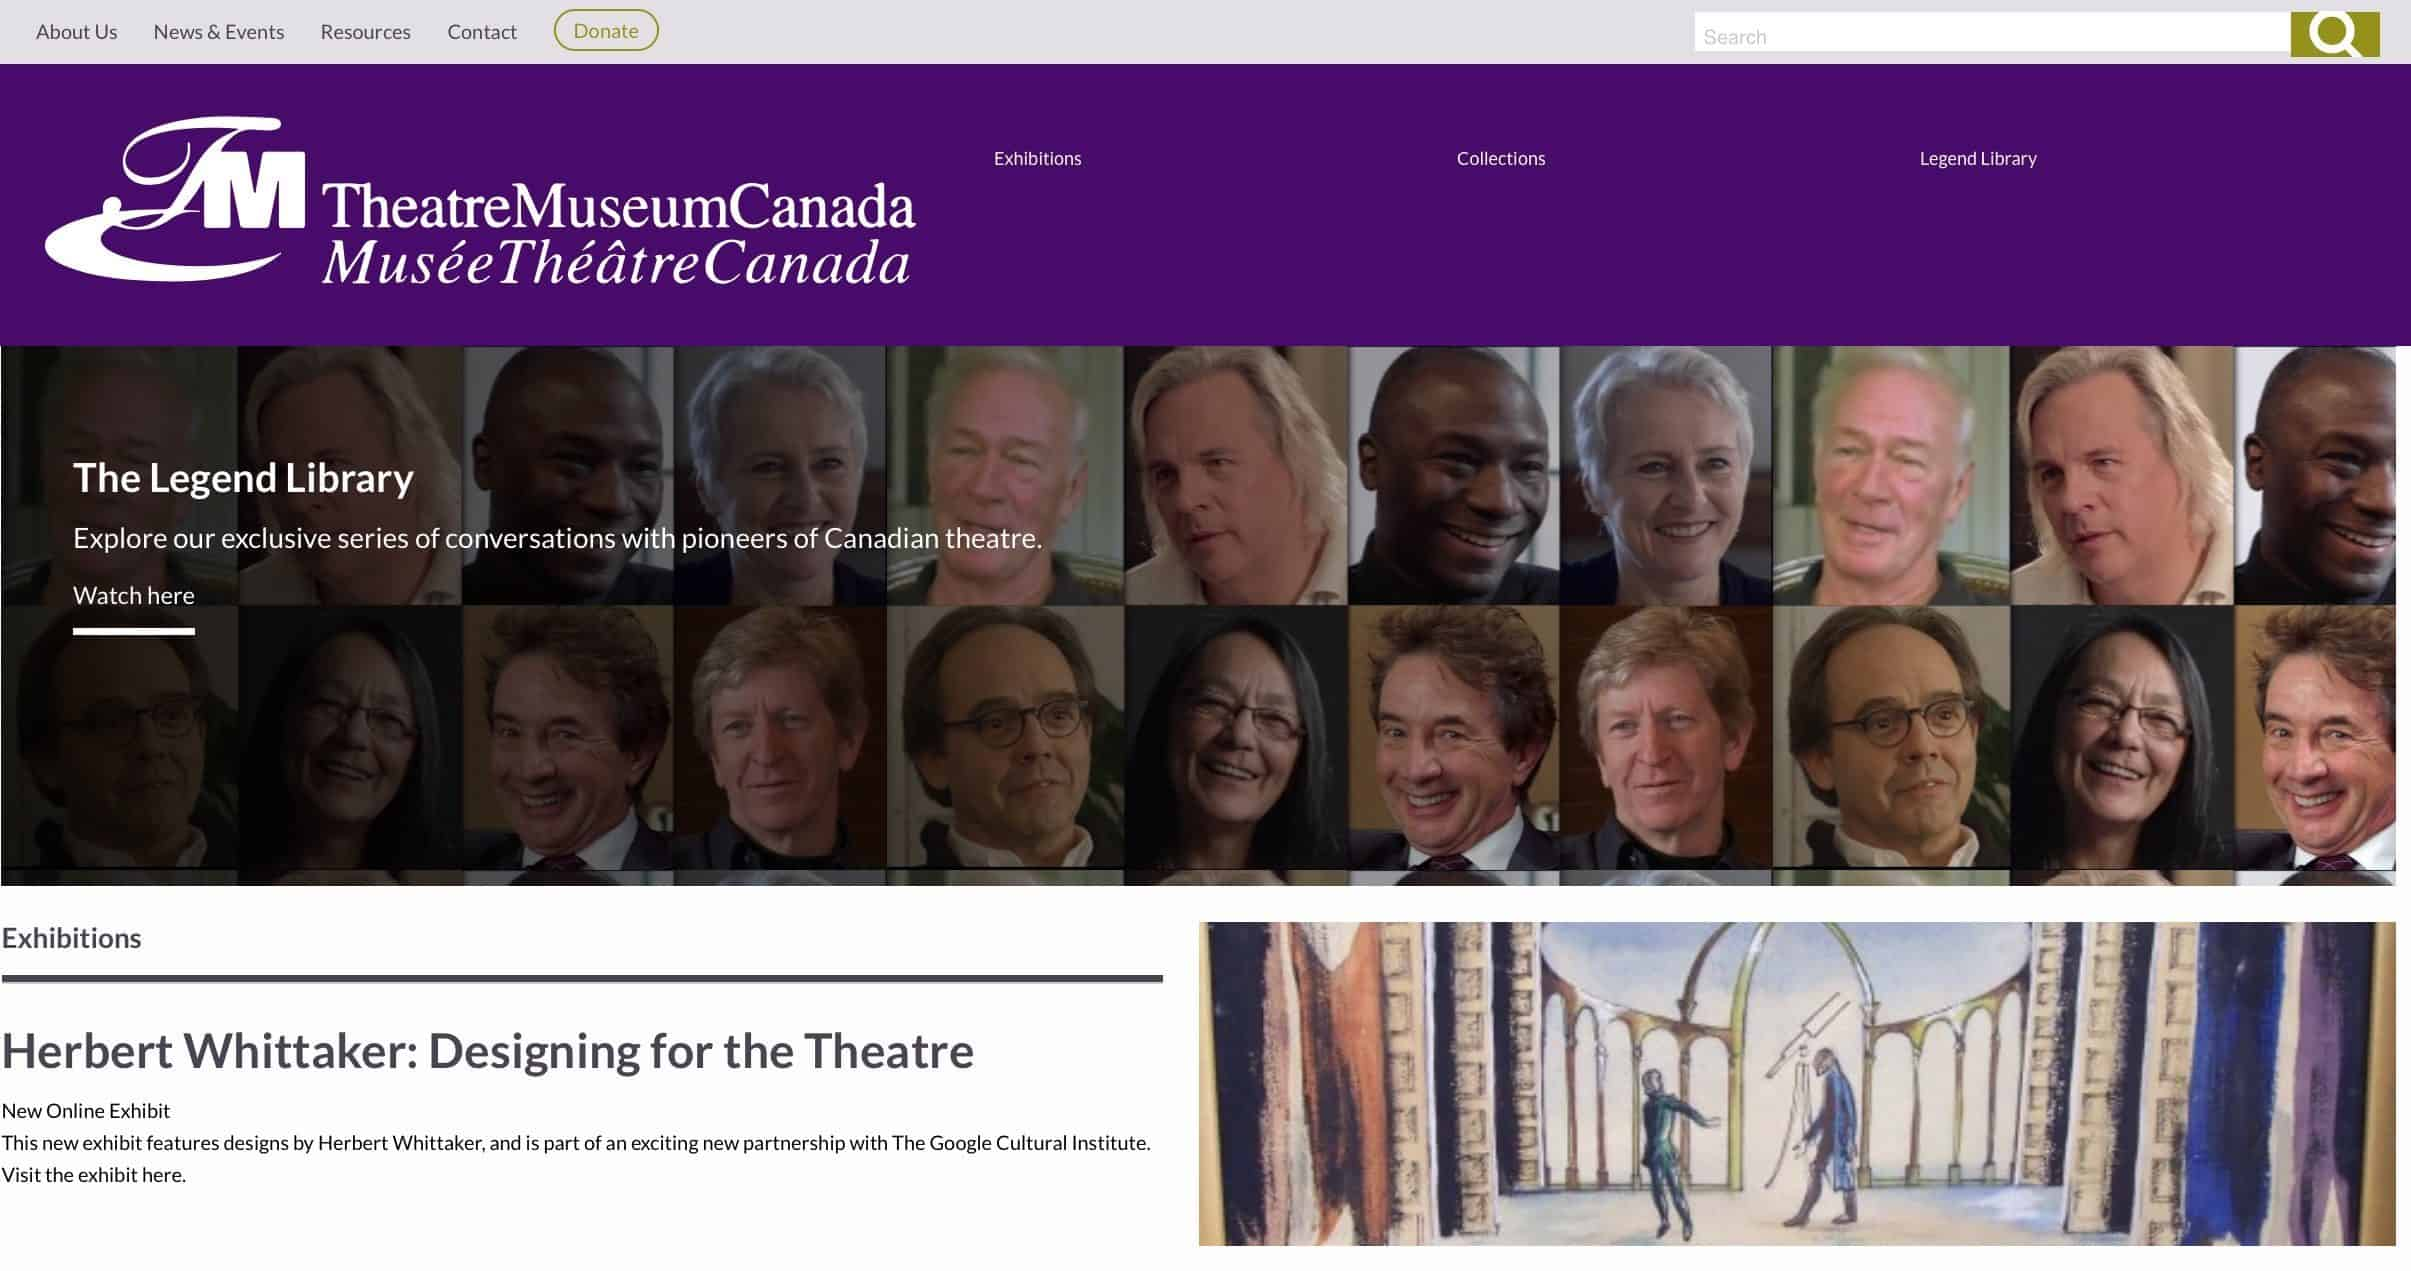 Screenshot of Theatre Museum Canada website - Home page